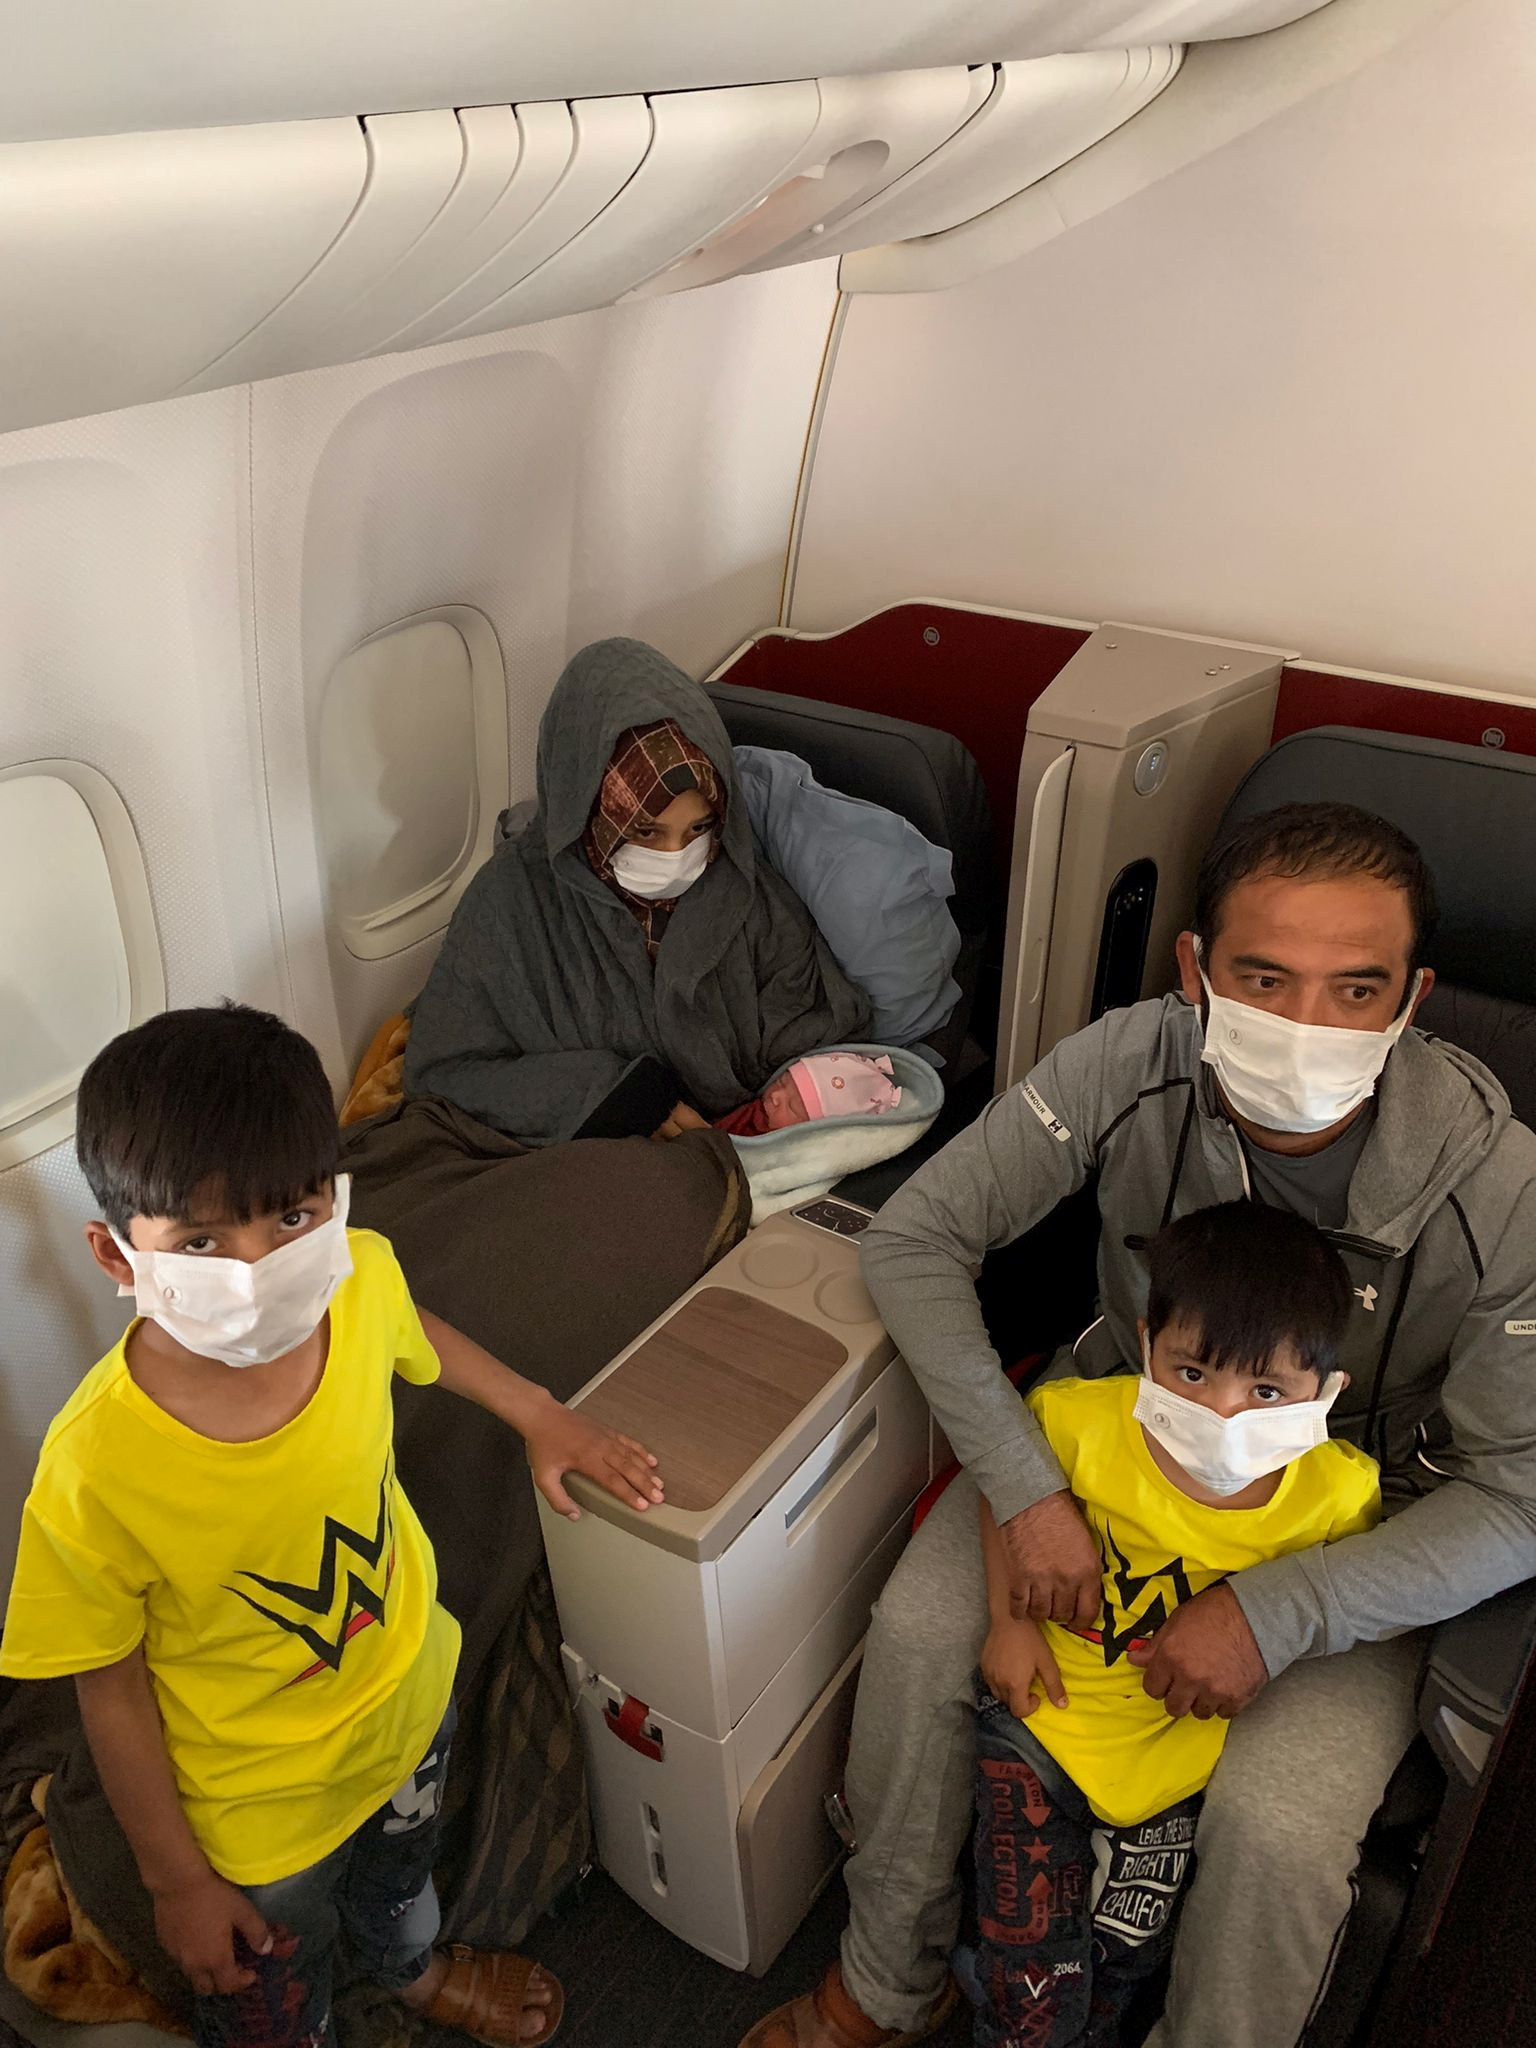 Afghan evacuee Soman Noori, accompanied by her husband Taj Moh Hammat and their sons, holds her newborn baby girl named Havva on board an evacuation flight operated by Turkish Airlines from Dubai to Britain's Birmingham, August 28, 2021. Turkish Airlines/Handout via REUTERS